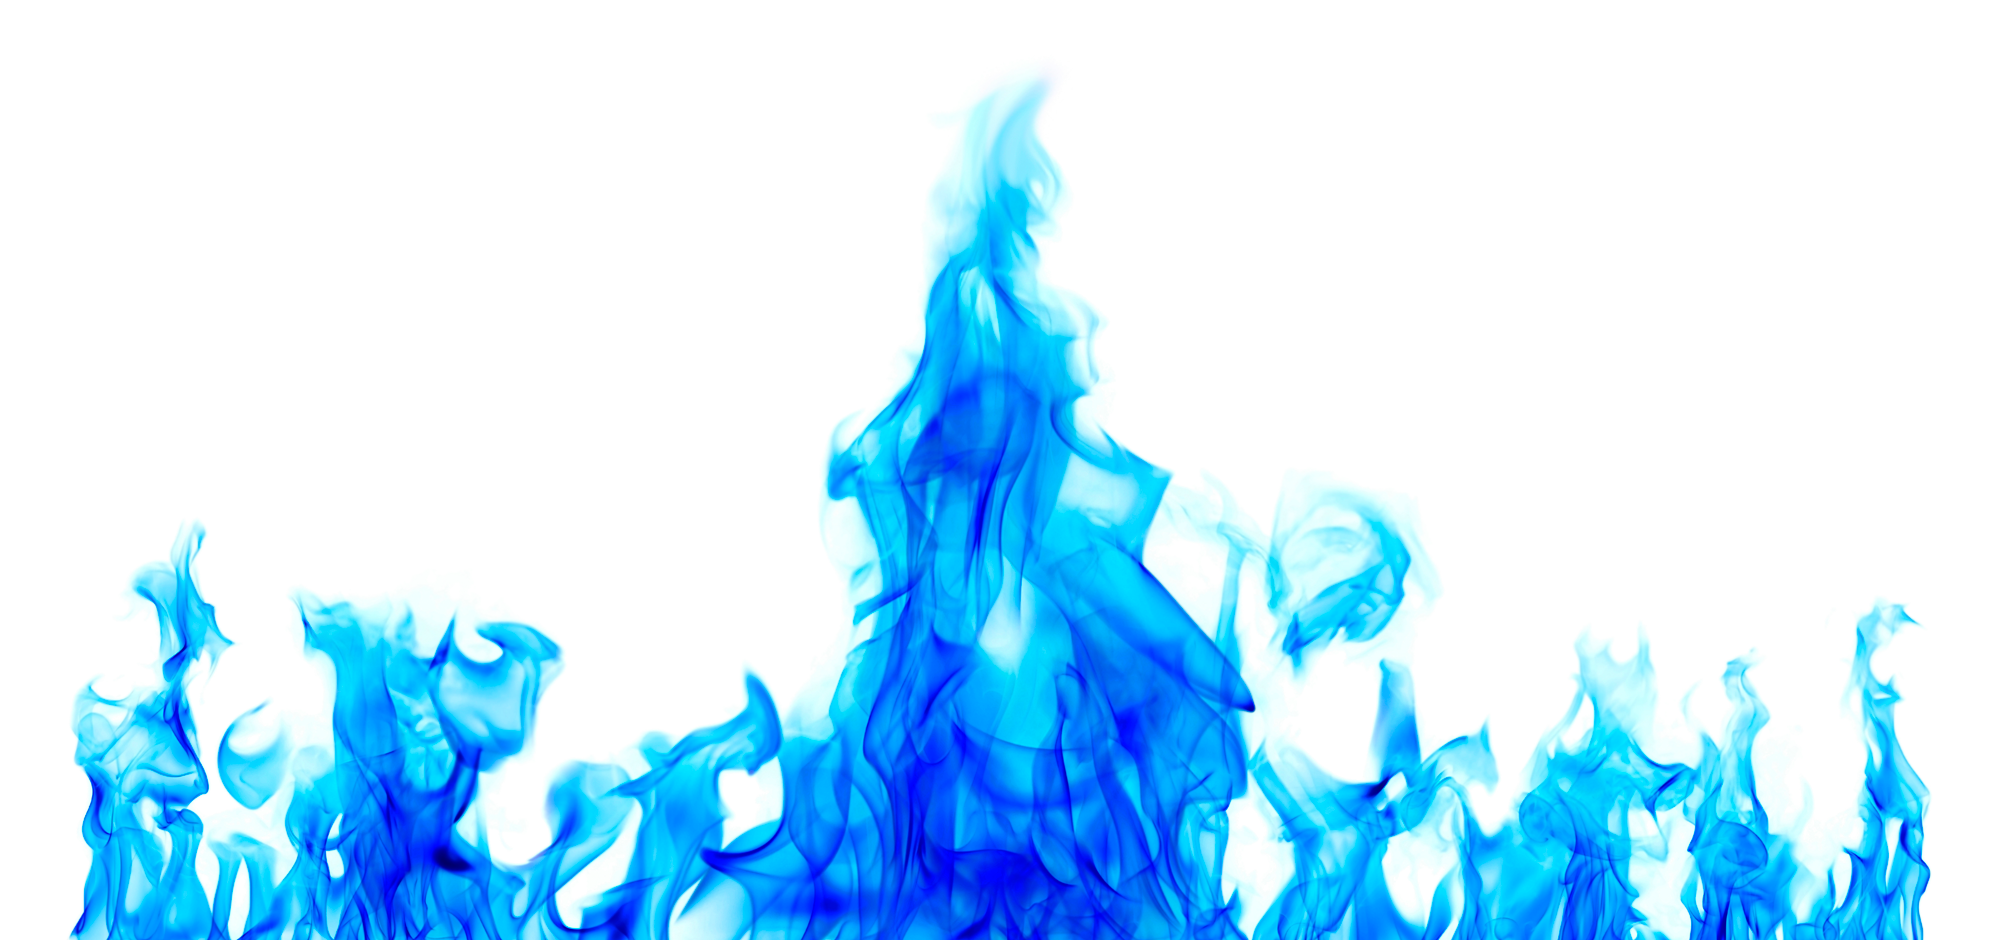 Blue flame png. Fire image purepng free